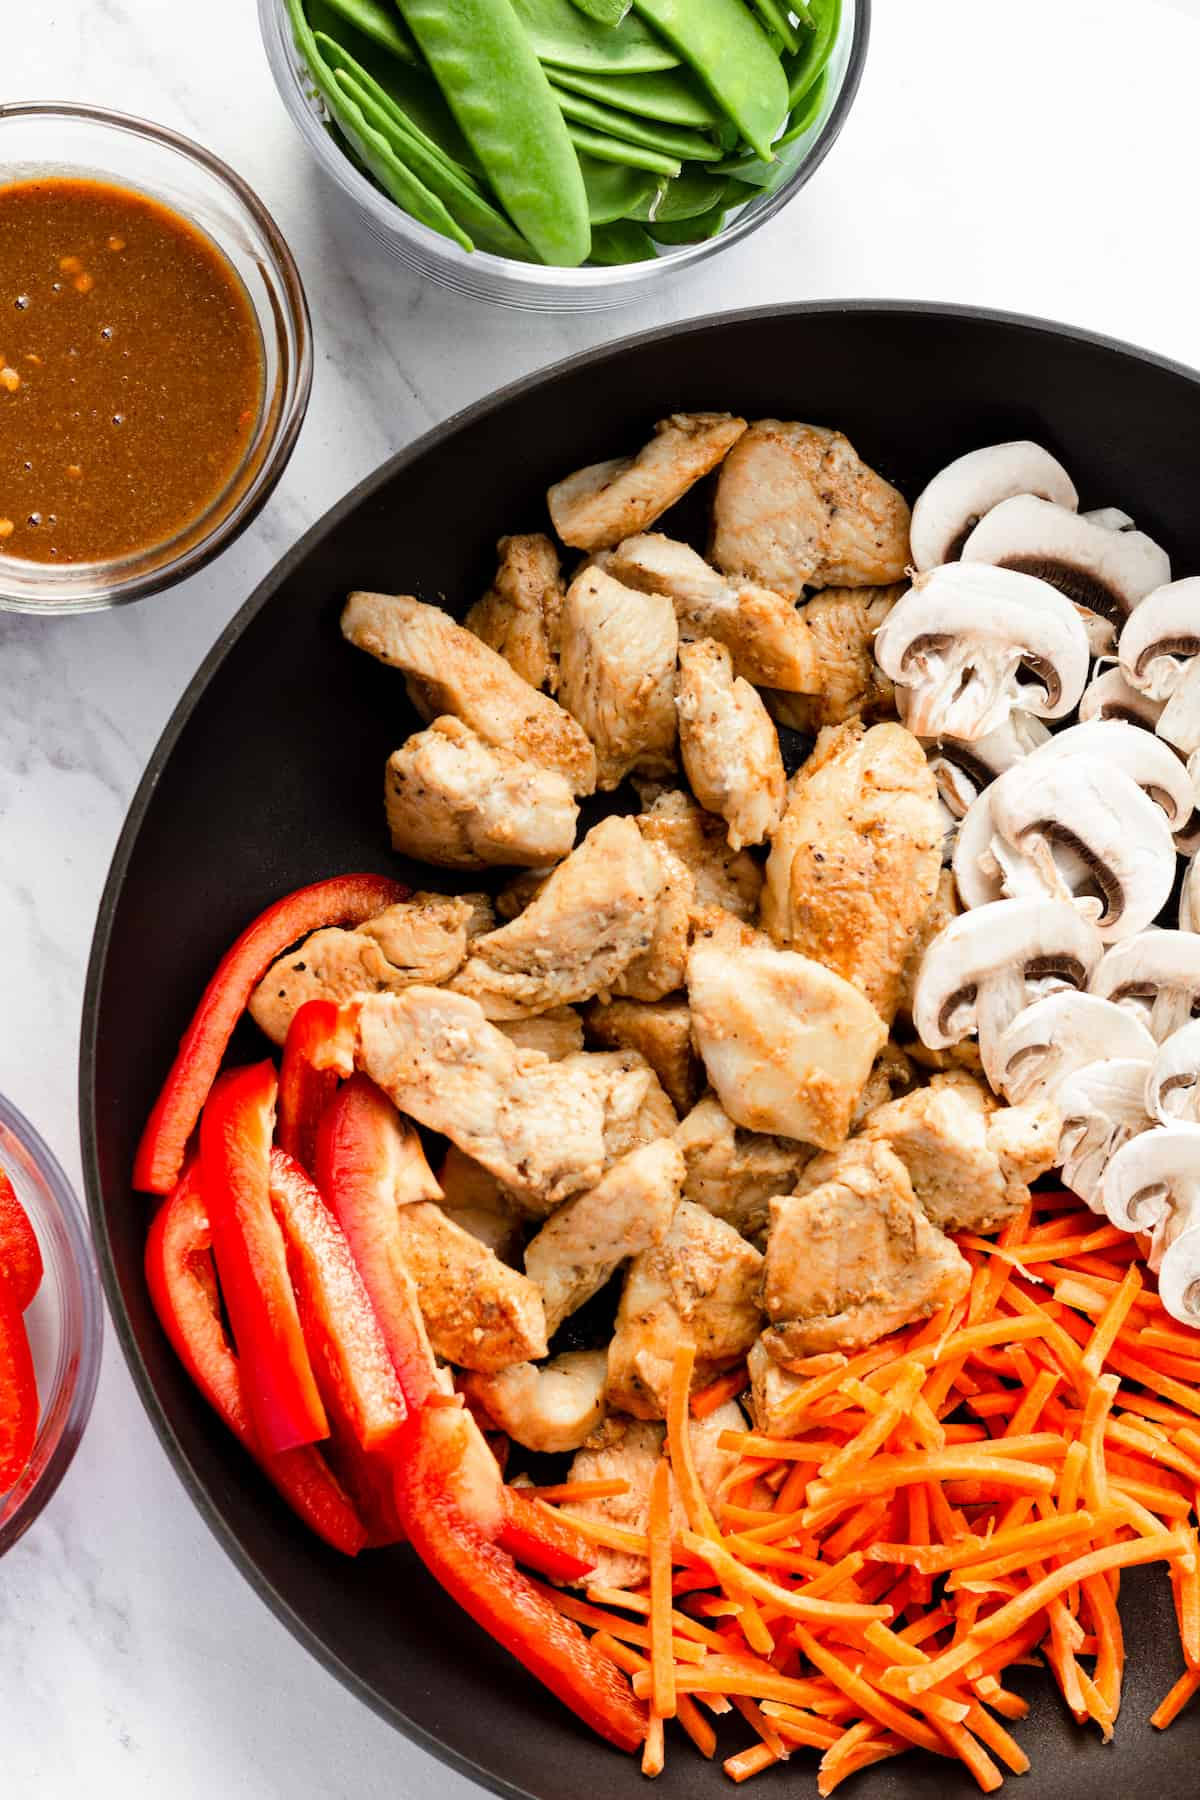 Cooked Chicken, Shredded Carrots, Mushrooms and Red Pepper Slices in a Skillet Beside the Other Ingredients